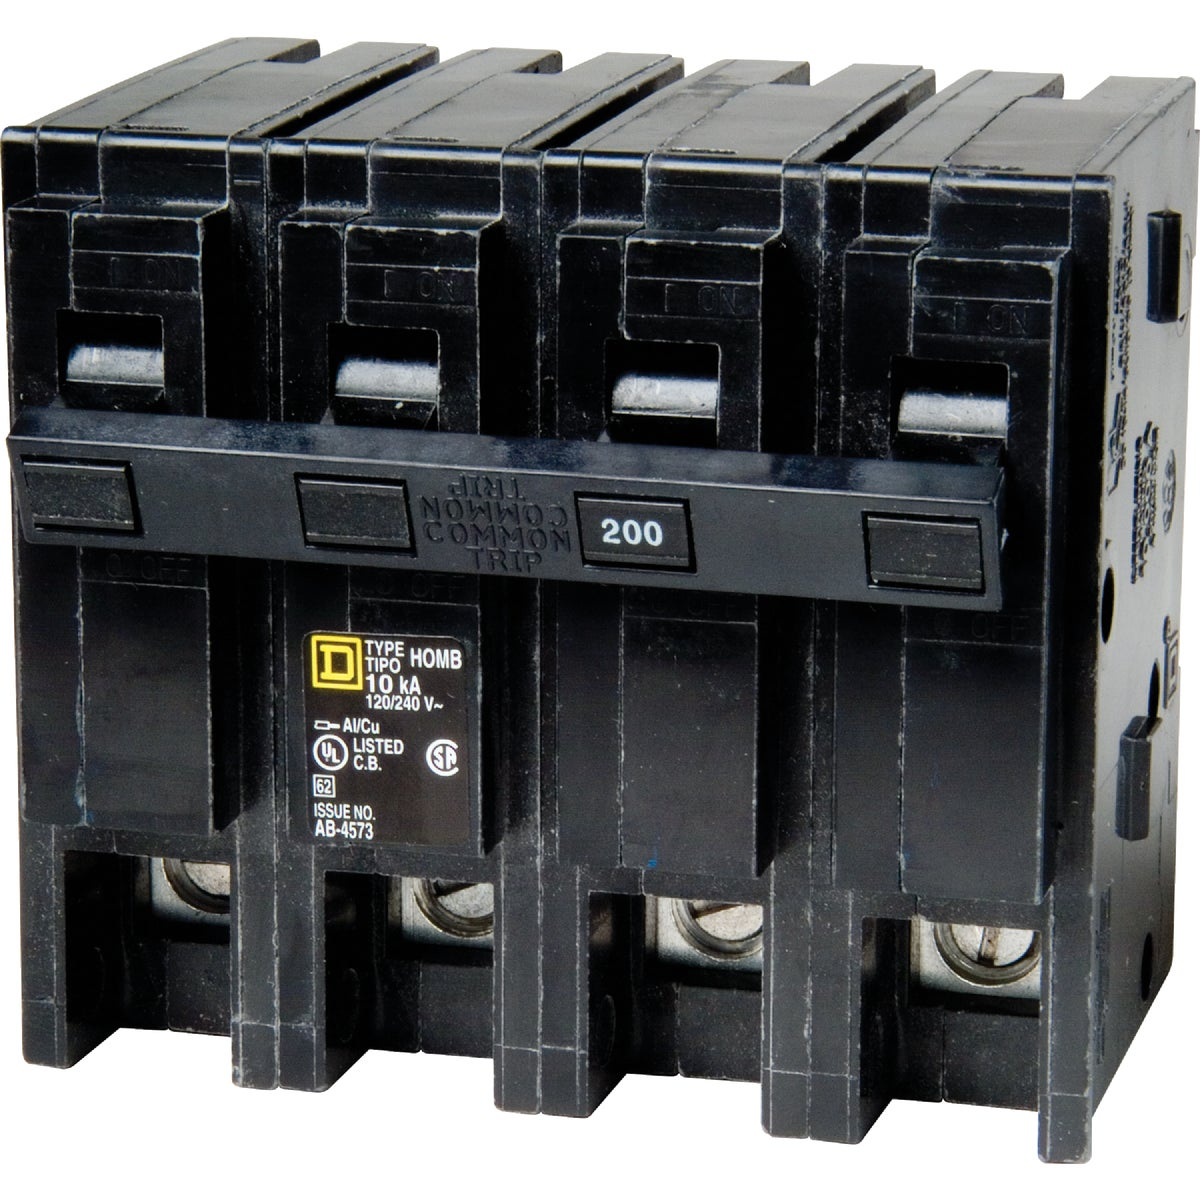 200A MAIN BREAKER - HOM2200CP by Square D Co